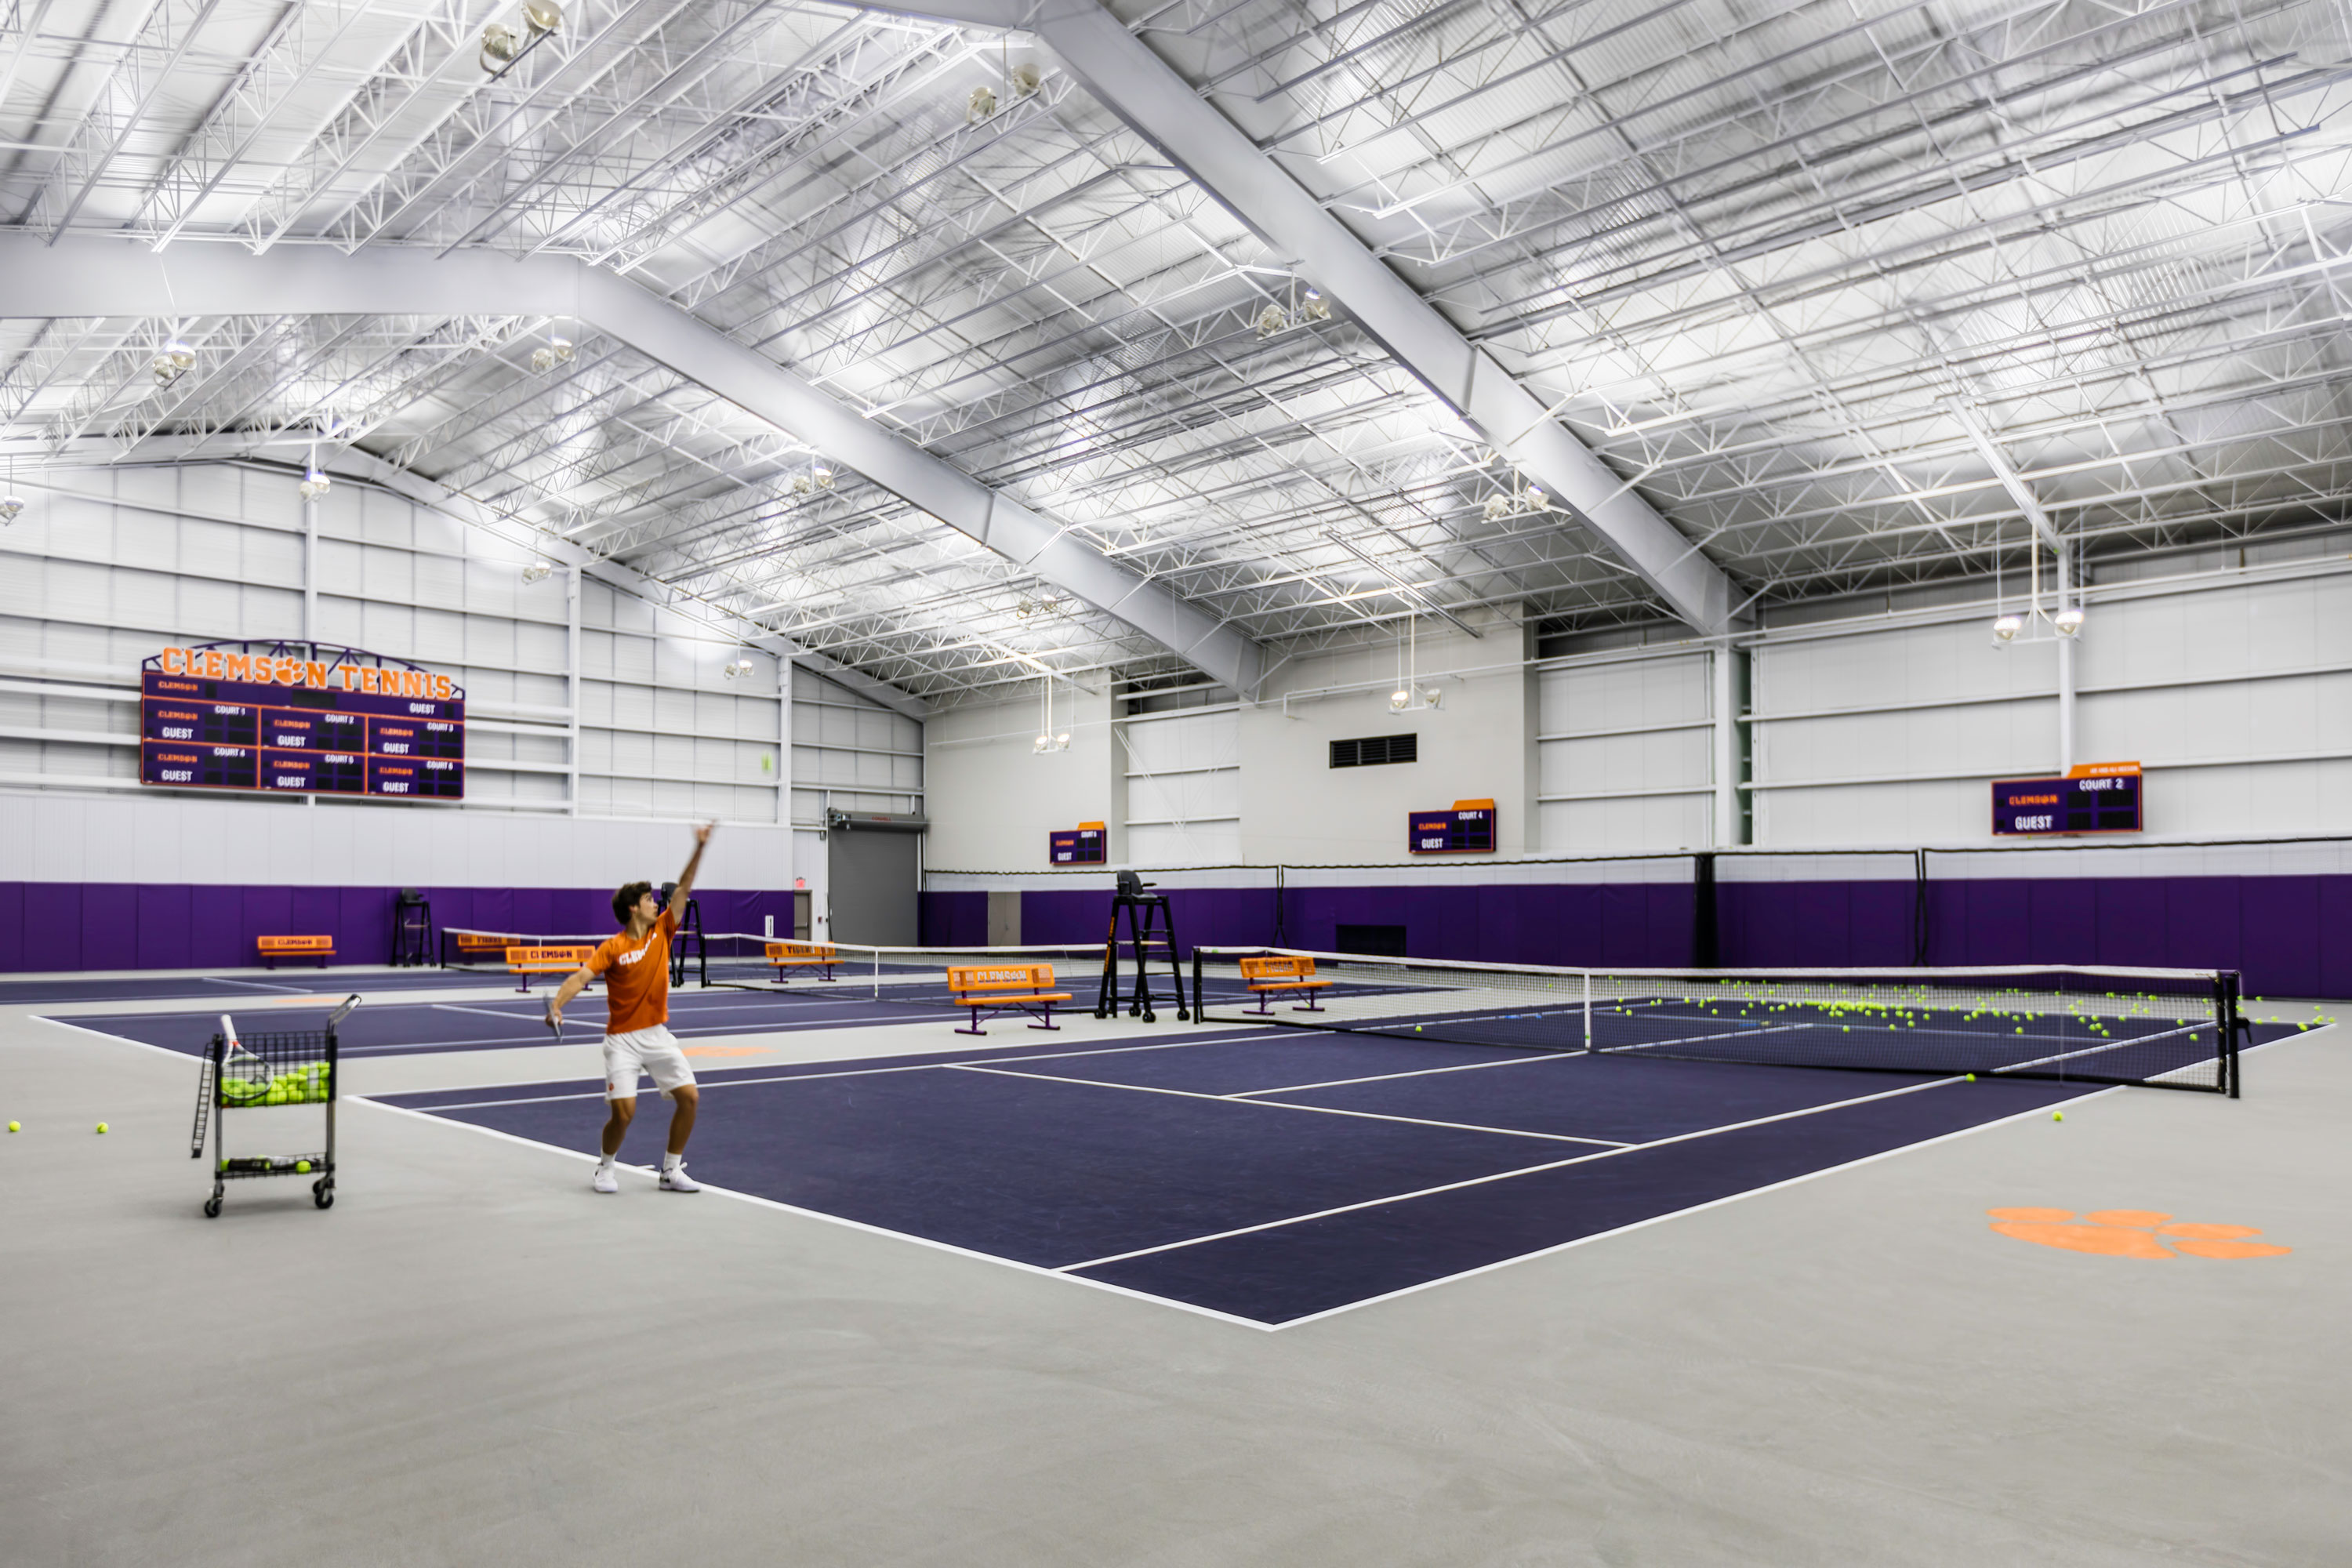 Clemson University Duckworth Family Tennis Facility